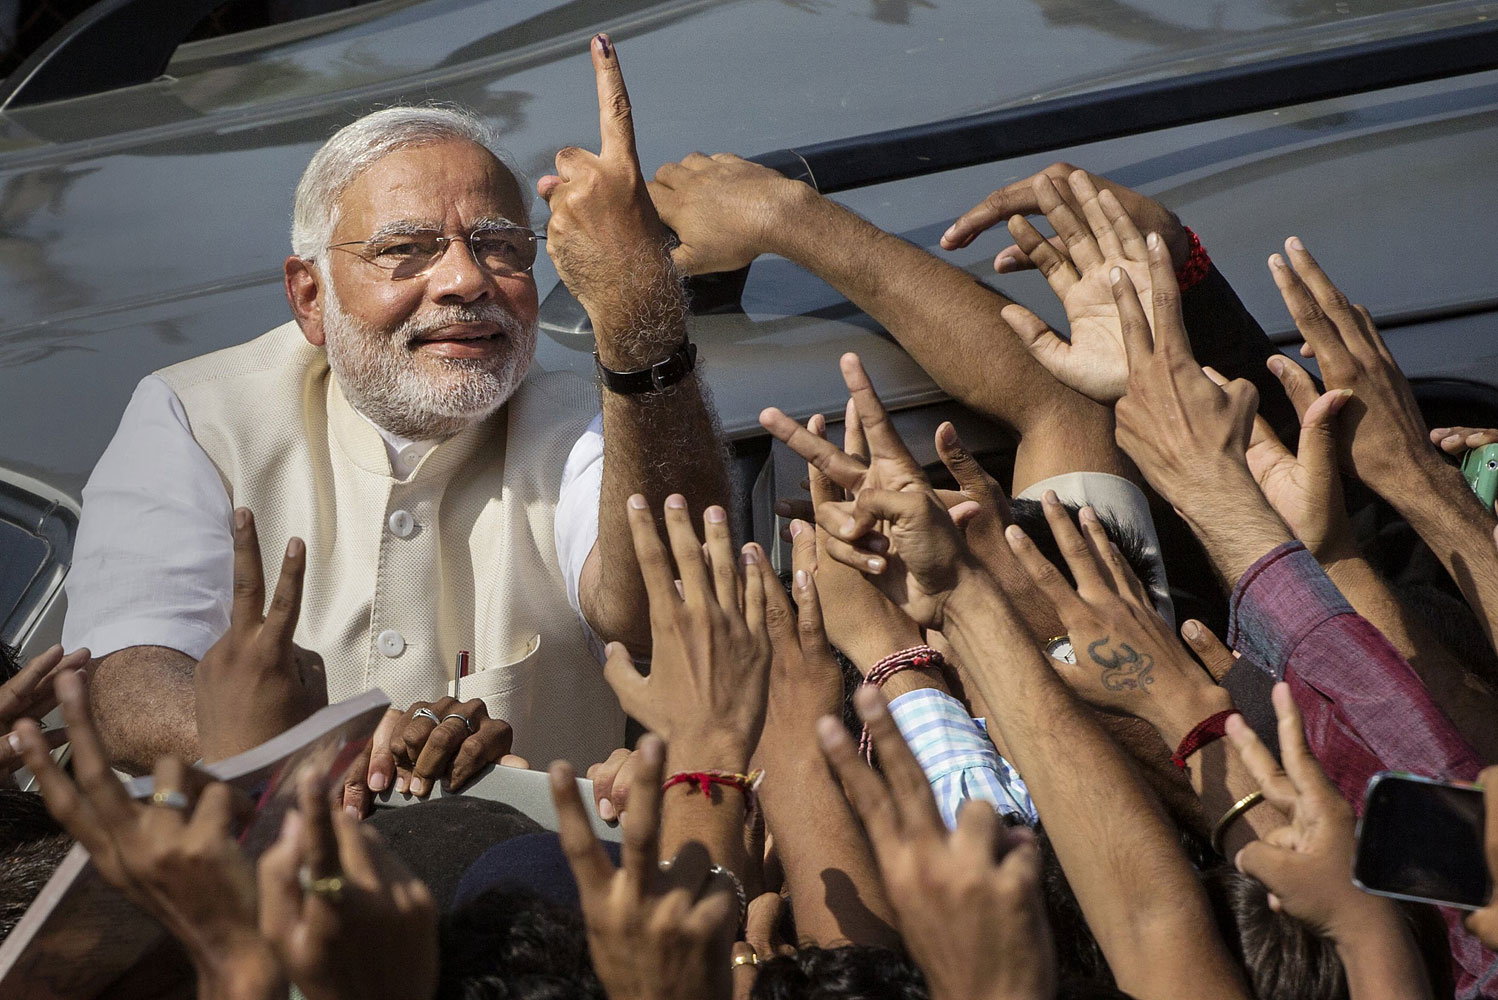 BJP leader Narendra Modi shows his inked finger to supporters as he leaves a polling station after voting on April 30, 2014 in Ahmedabad, India.